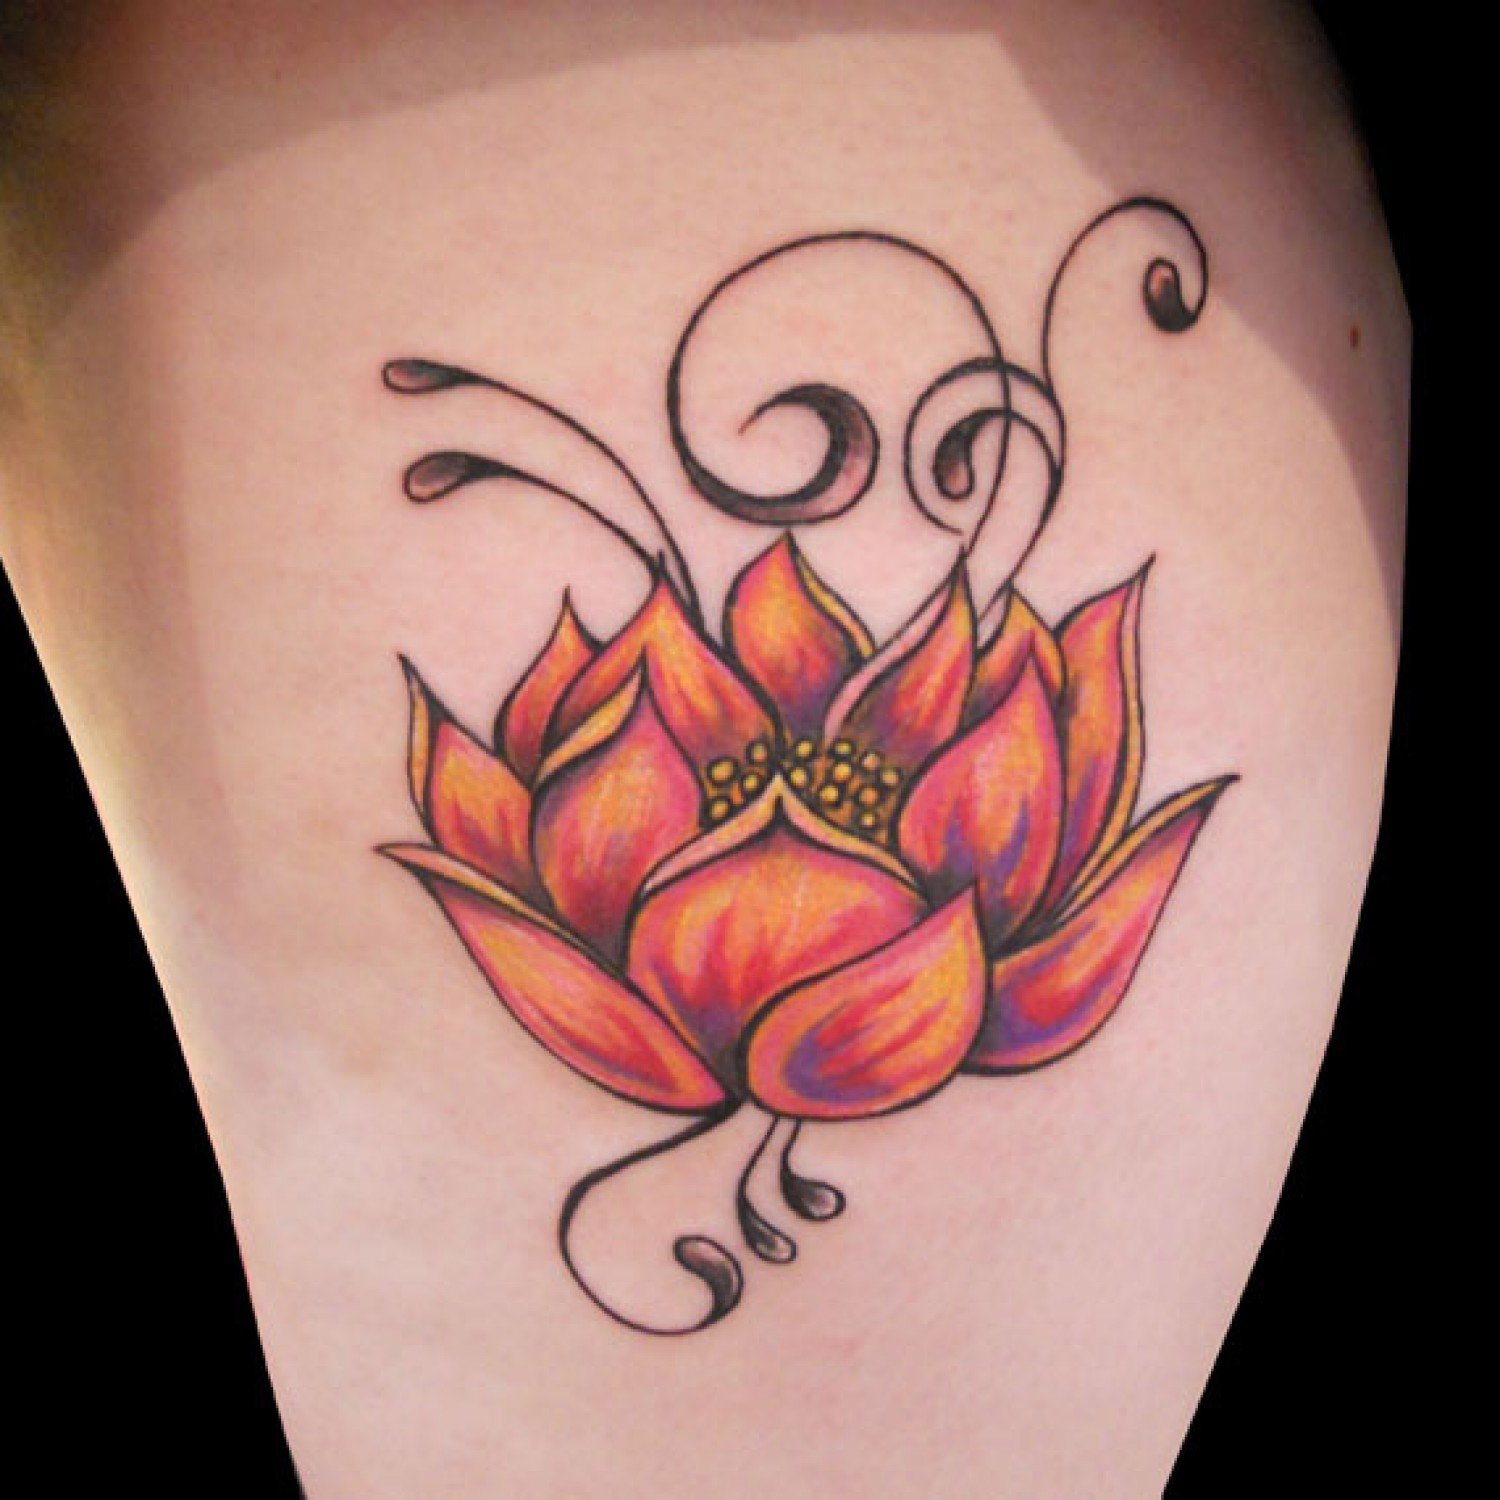 Orange lotus flower tattoo designs tattoo love orange lotus flower tattoo designs izmirmasajfo Choice Image